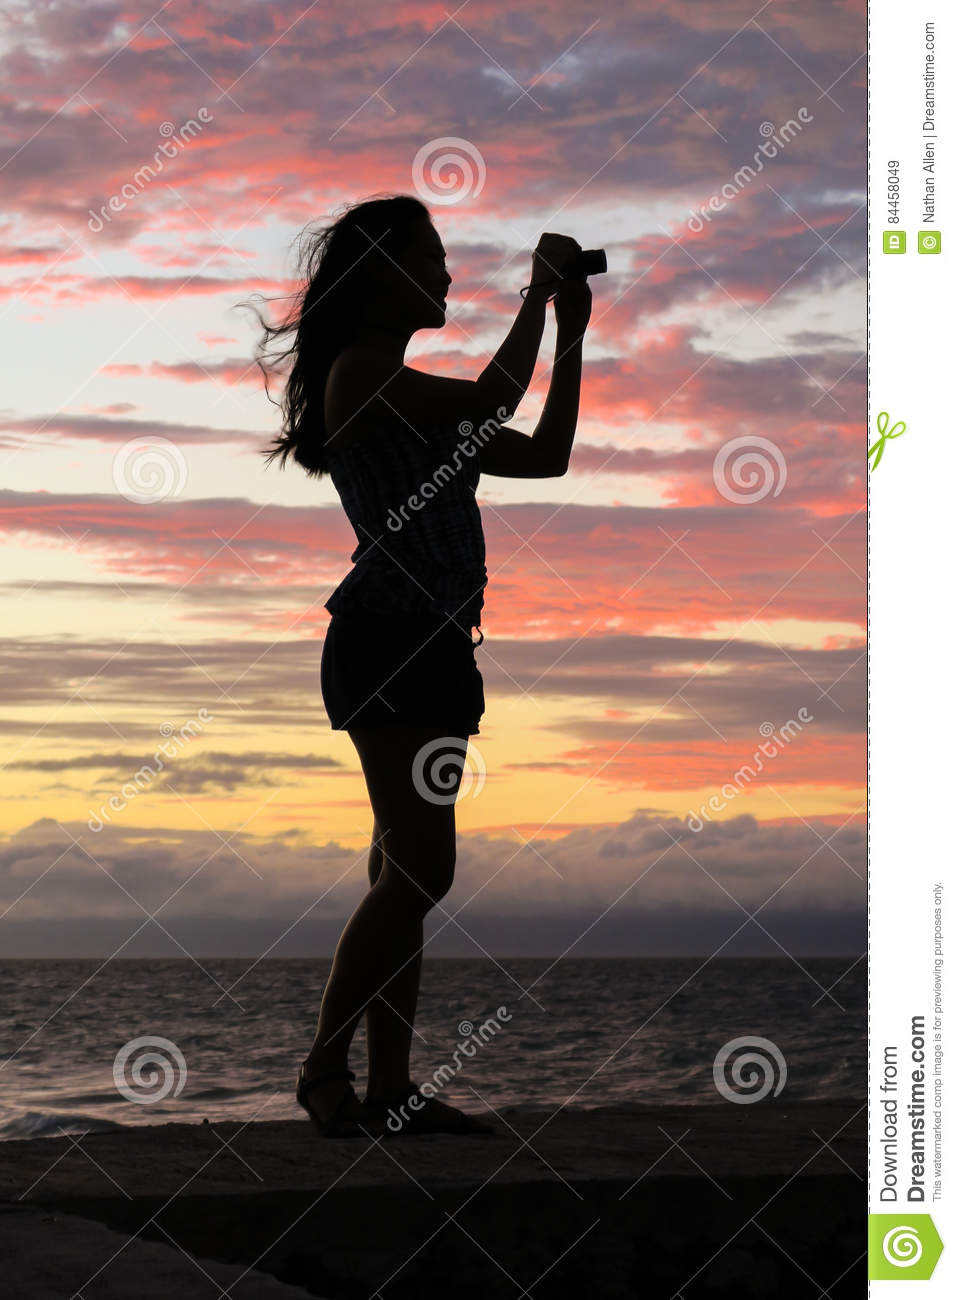 Sunset Silhouette of Woman Taking Photos